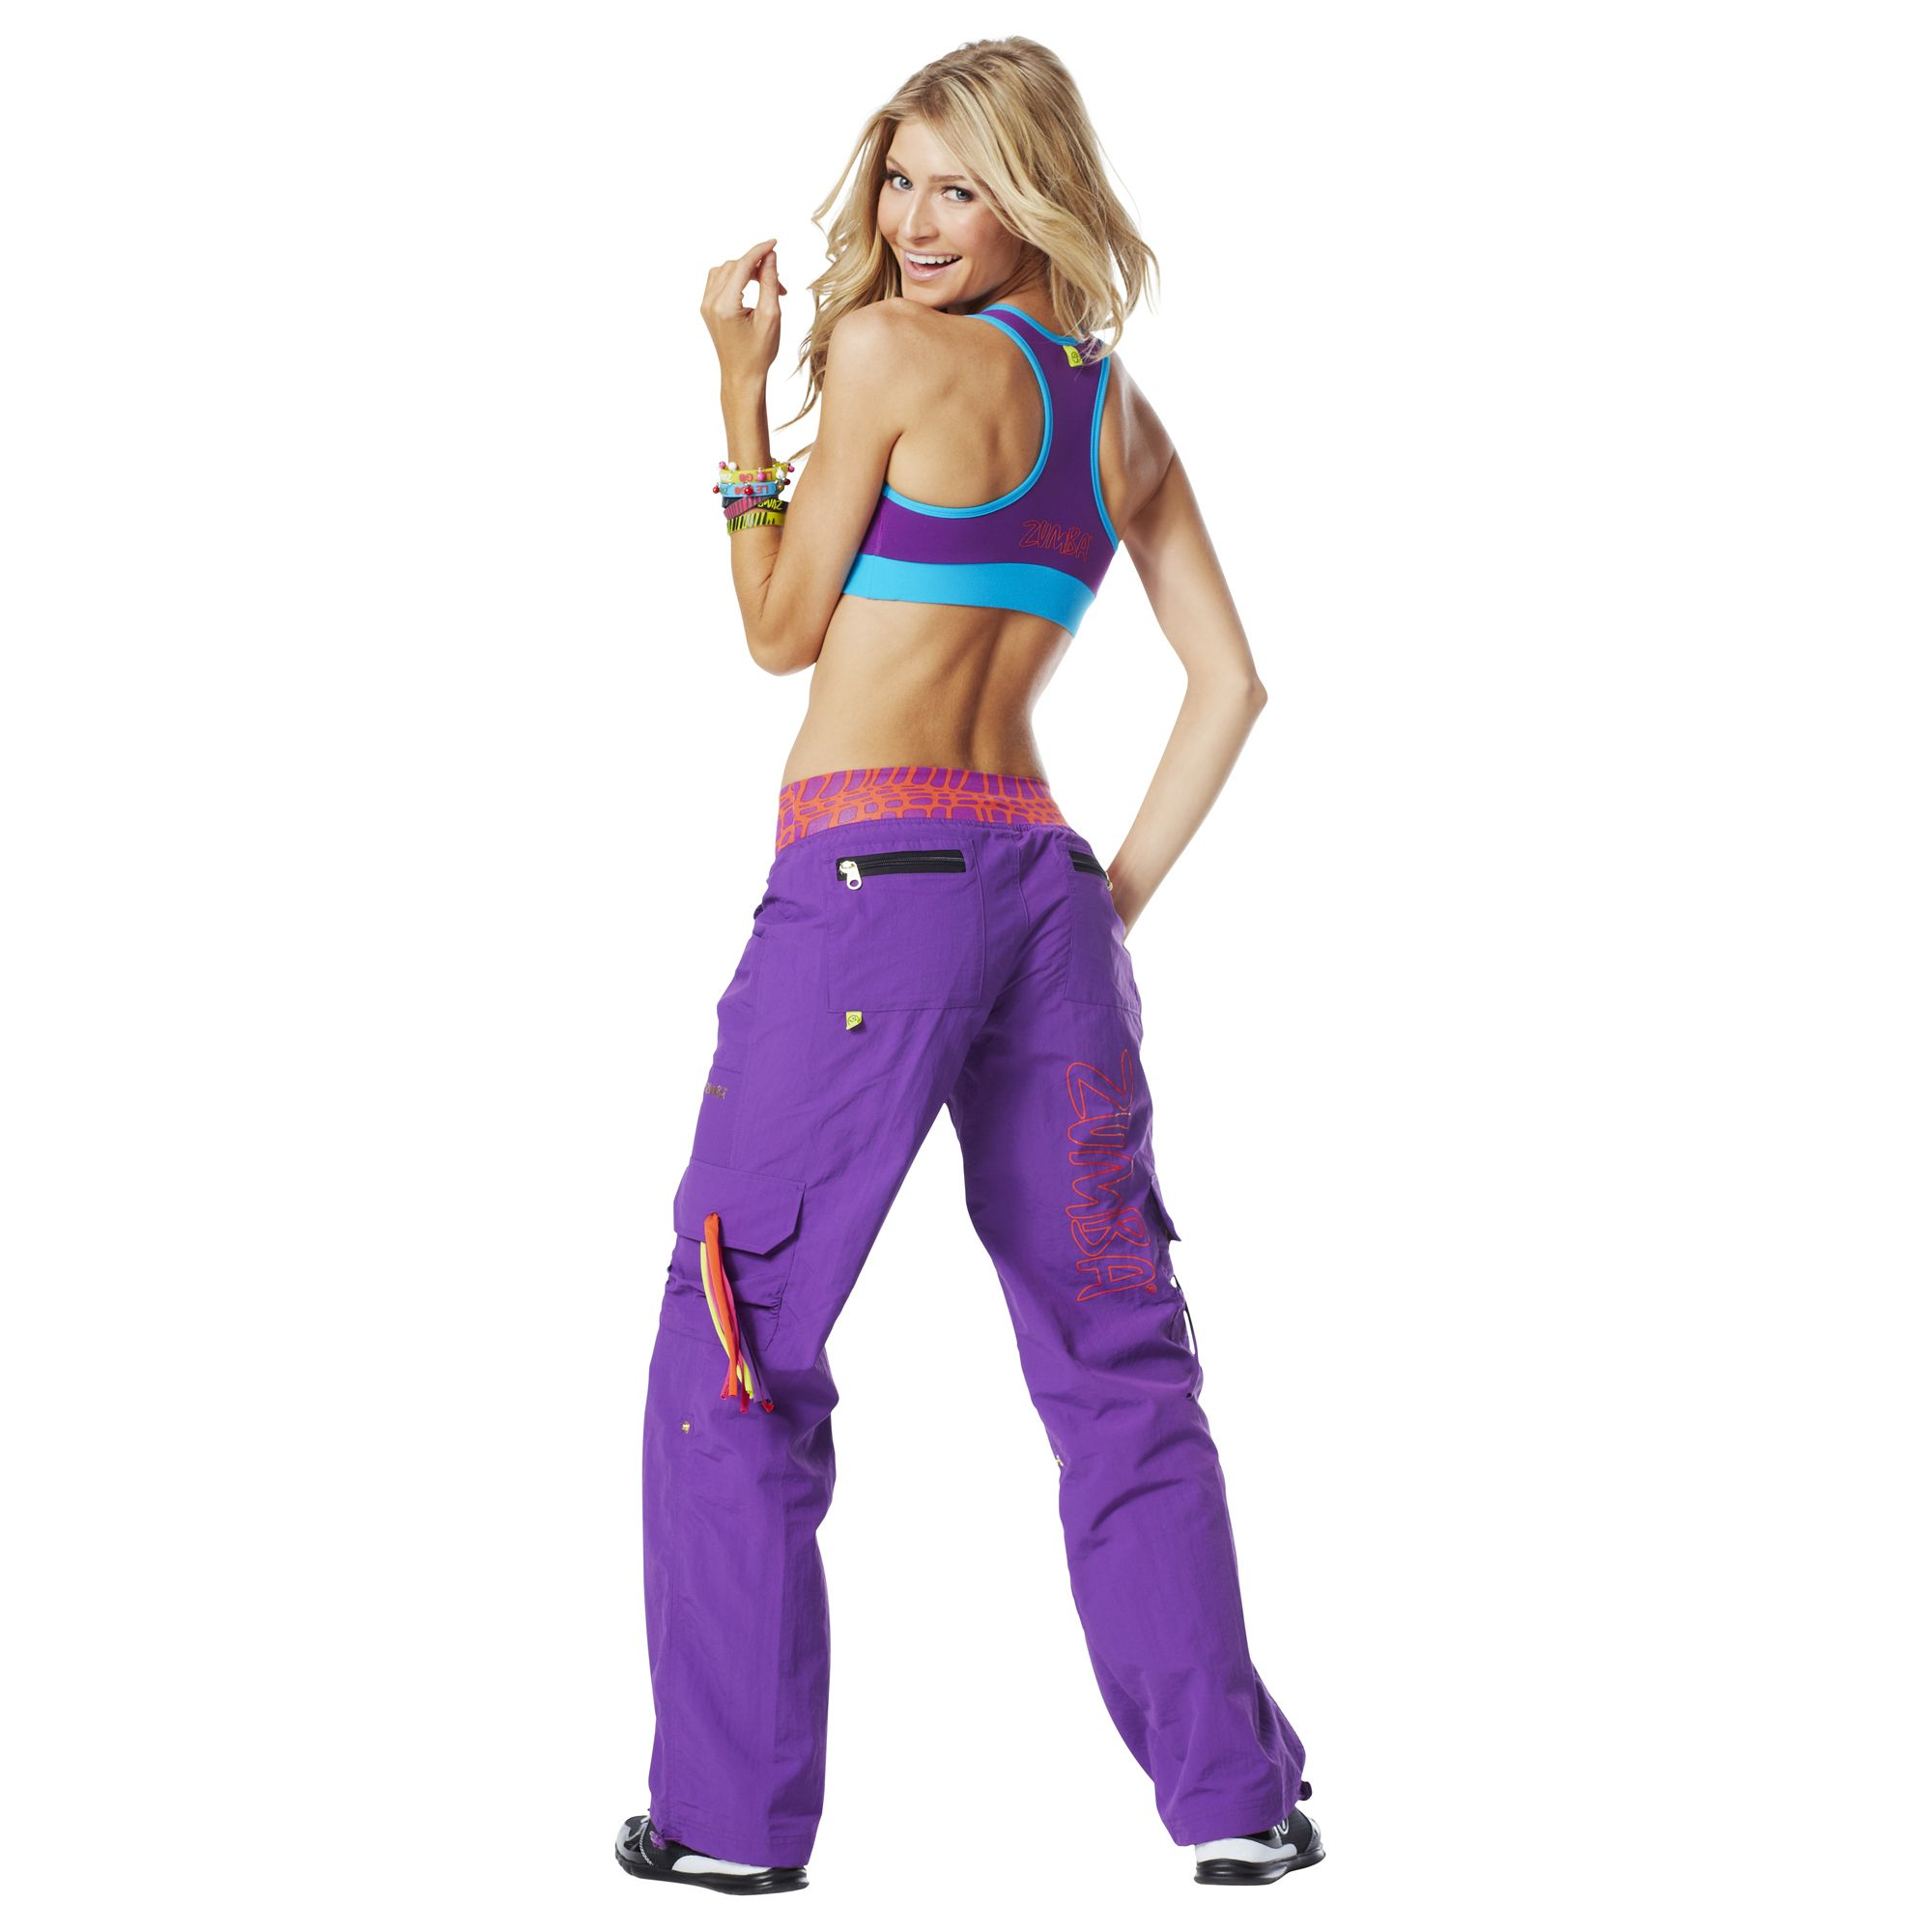 Cut Me Loose Cargo Pants | Zumba Fitness Shop #Zumbawear #Zwag ...